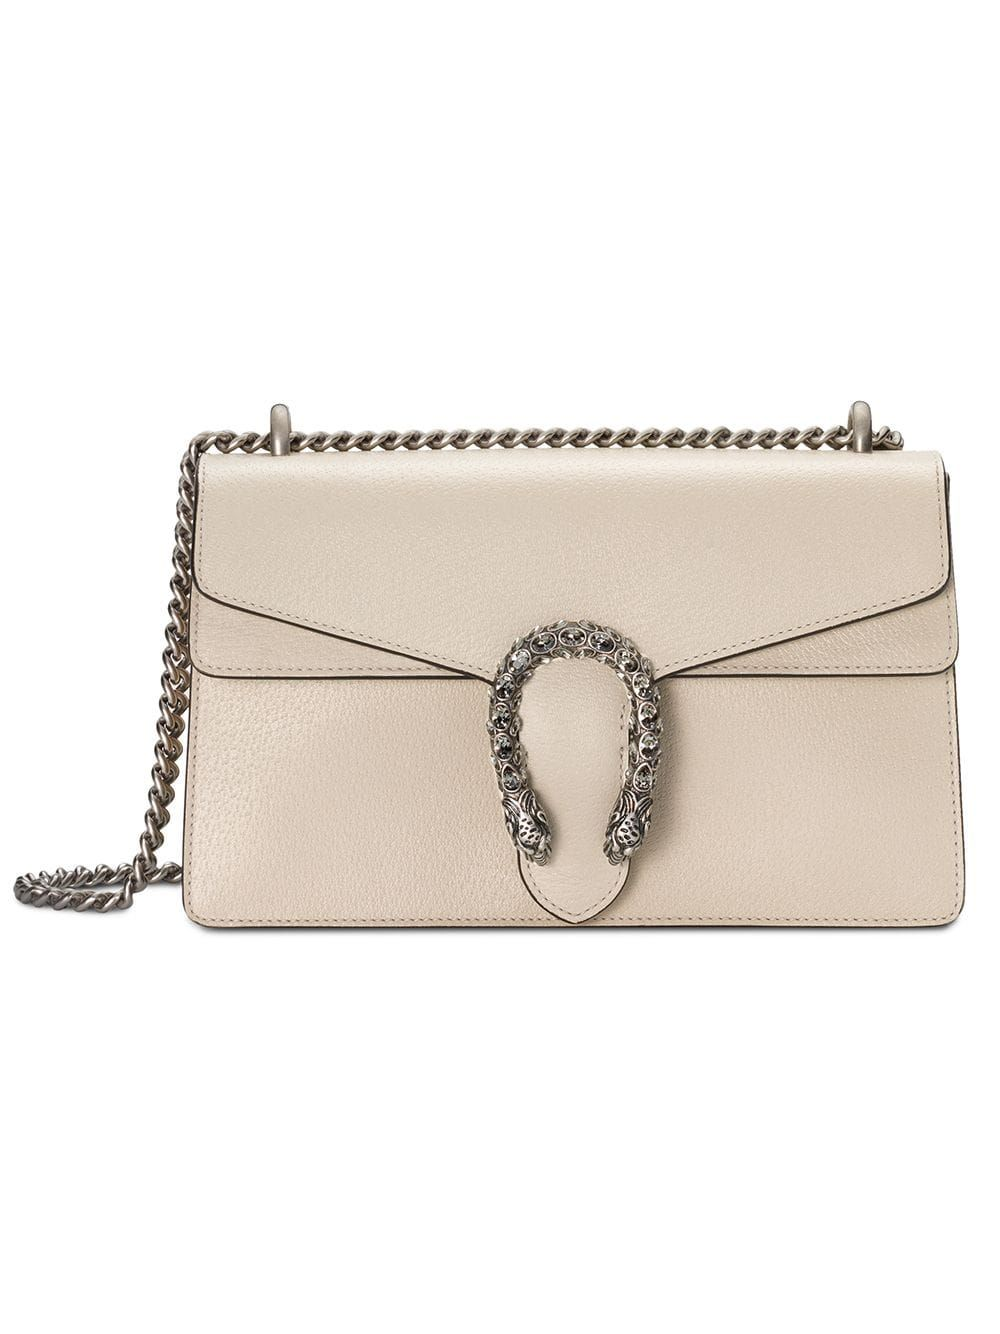 b4185b7b07 Gucci Dionysus small shoulder bag - Neutrals in 2019 | Products ...